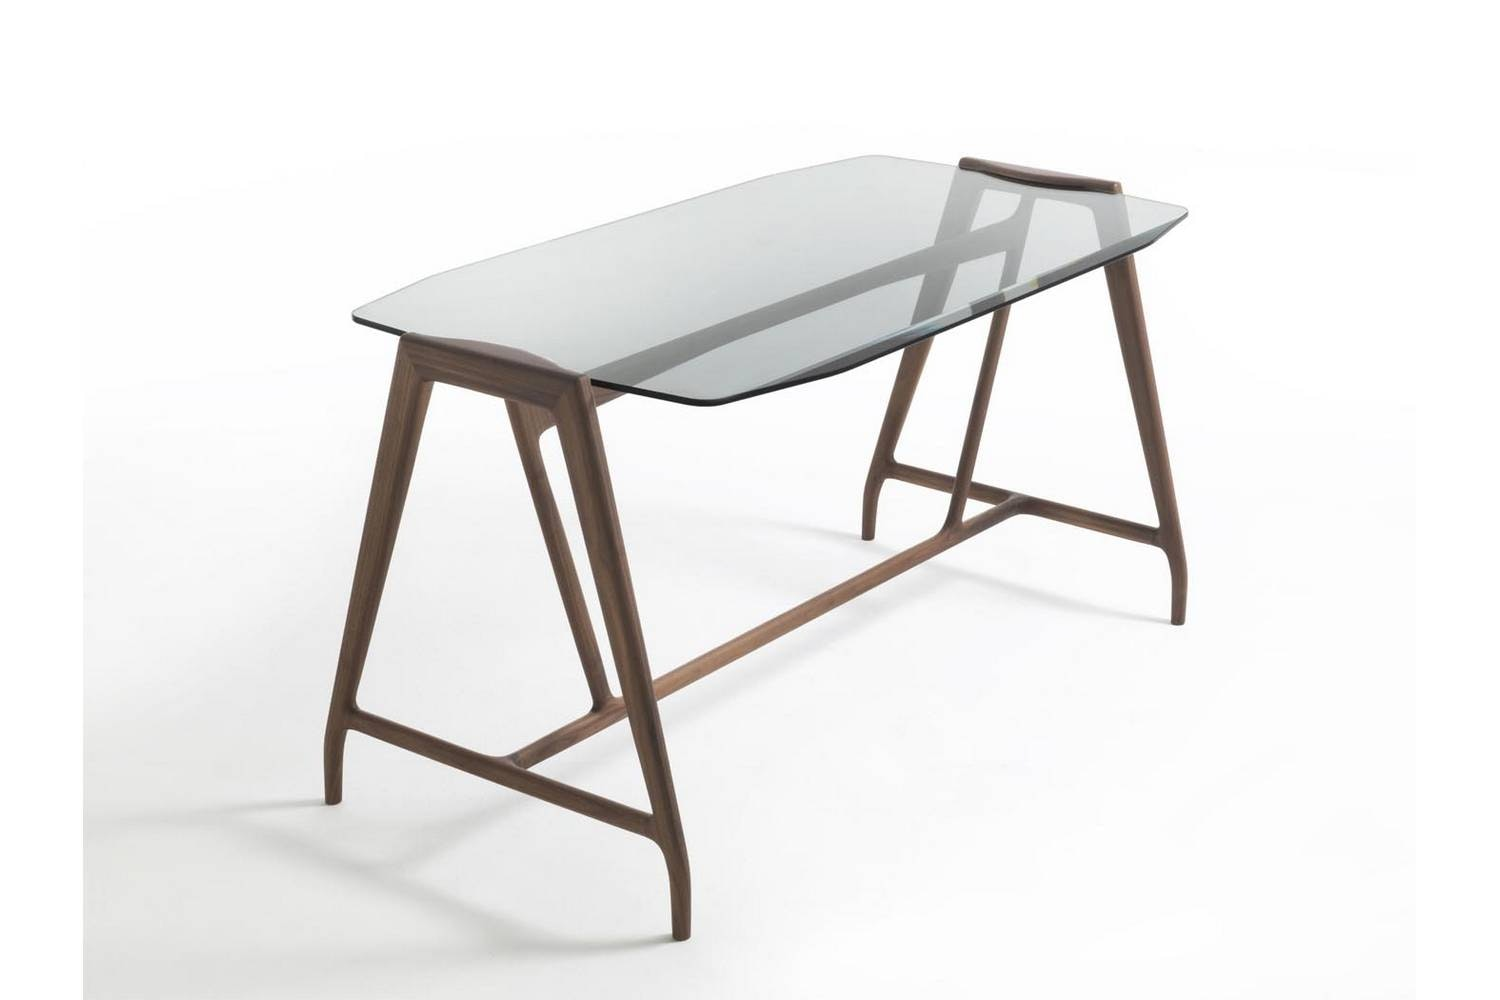 Academy Writing Desk by T. Colzani for Porada